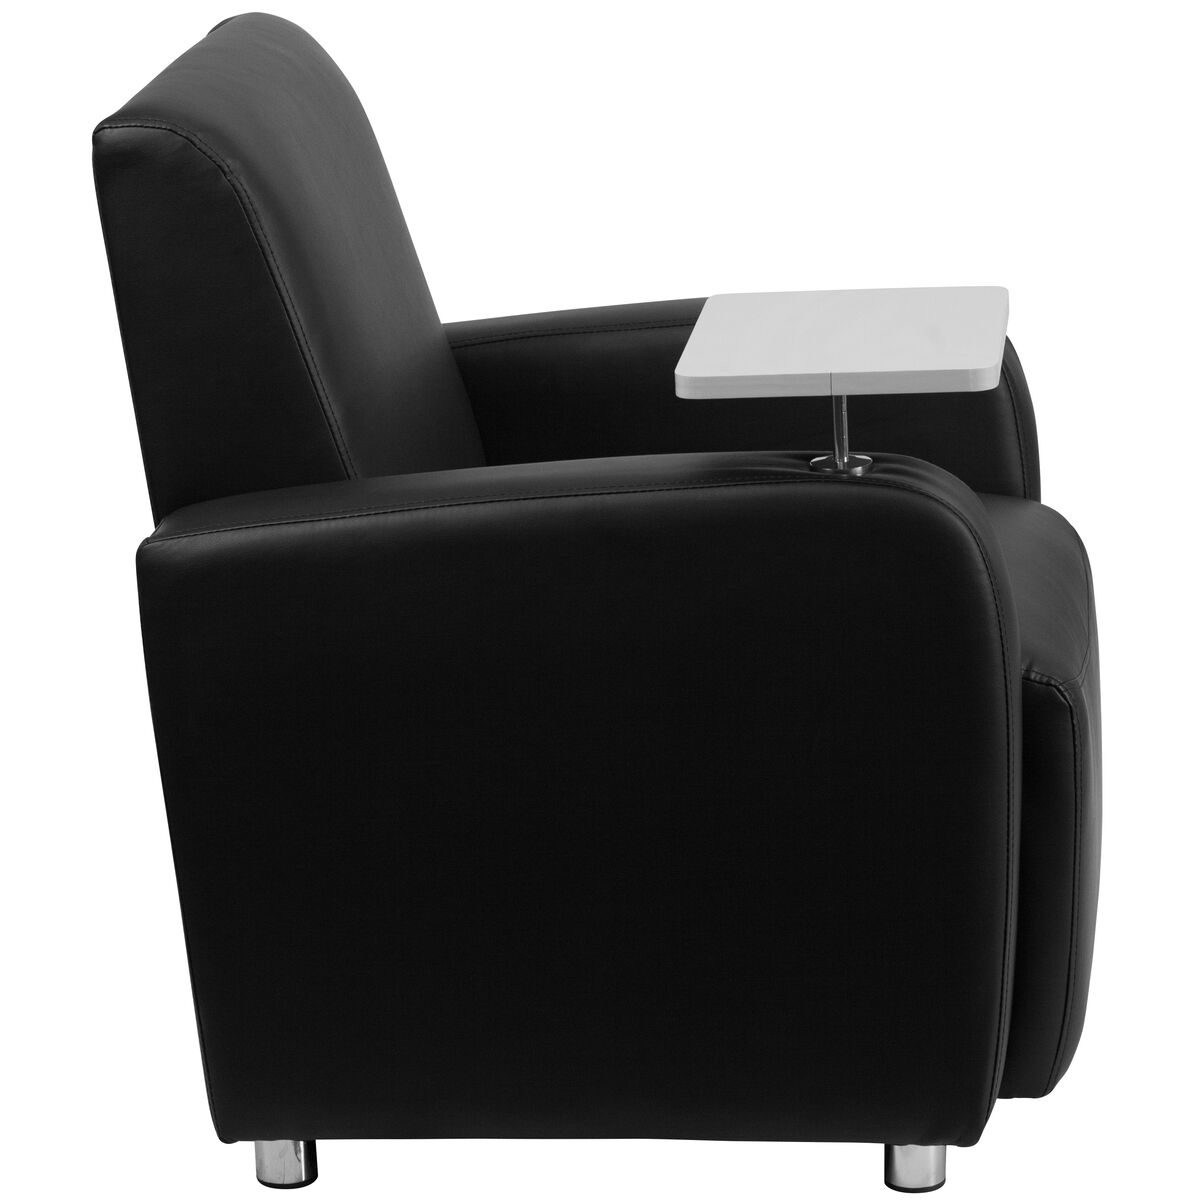 Black Leather Tablet Chair Bt 8217 Bk Gg Churchchairs4less Com